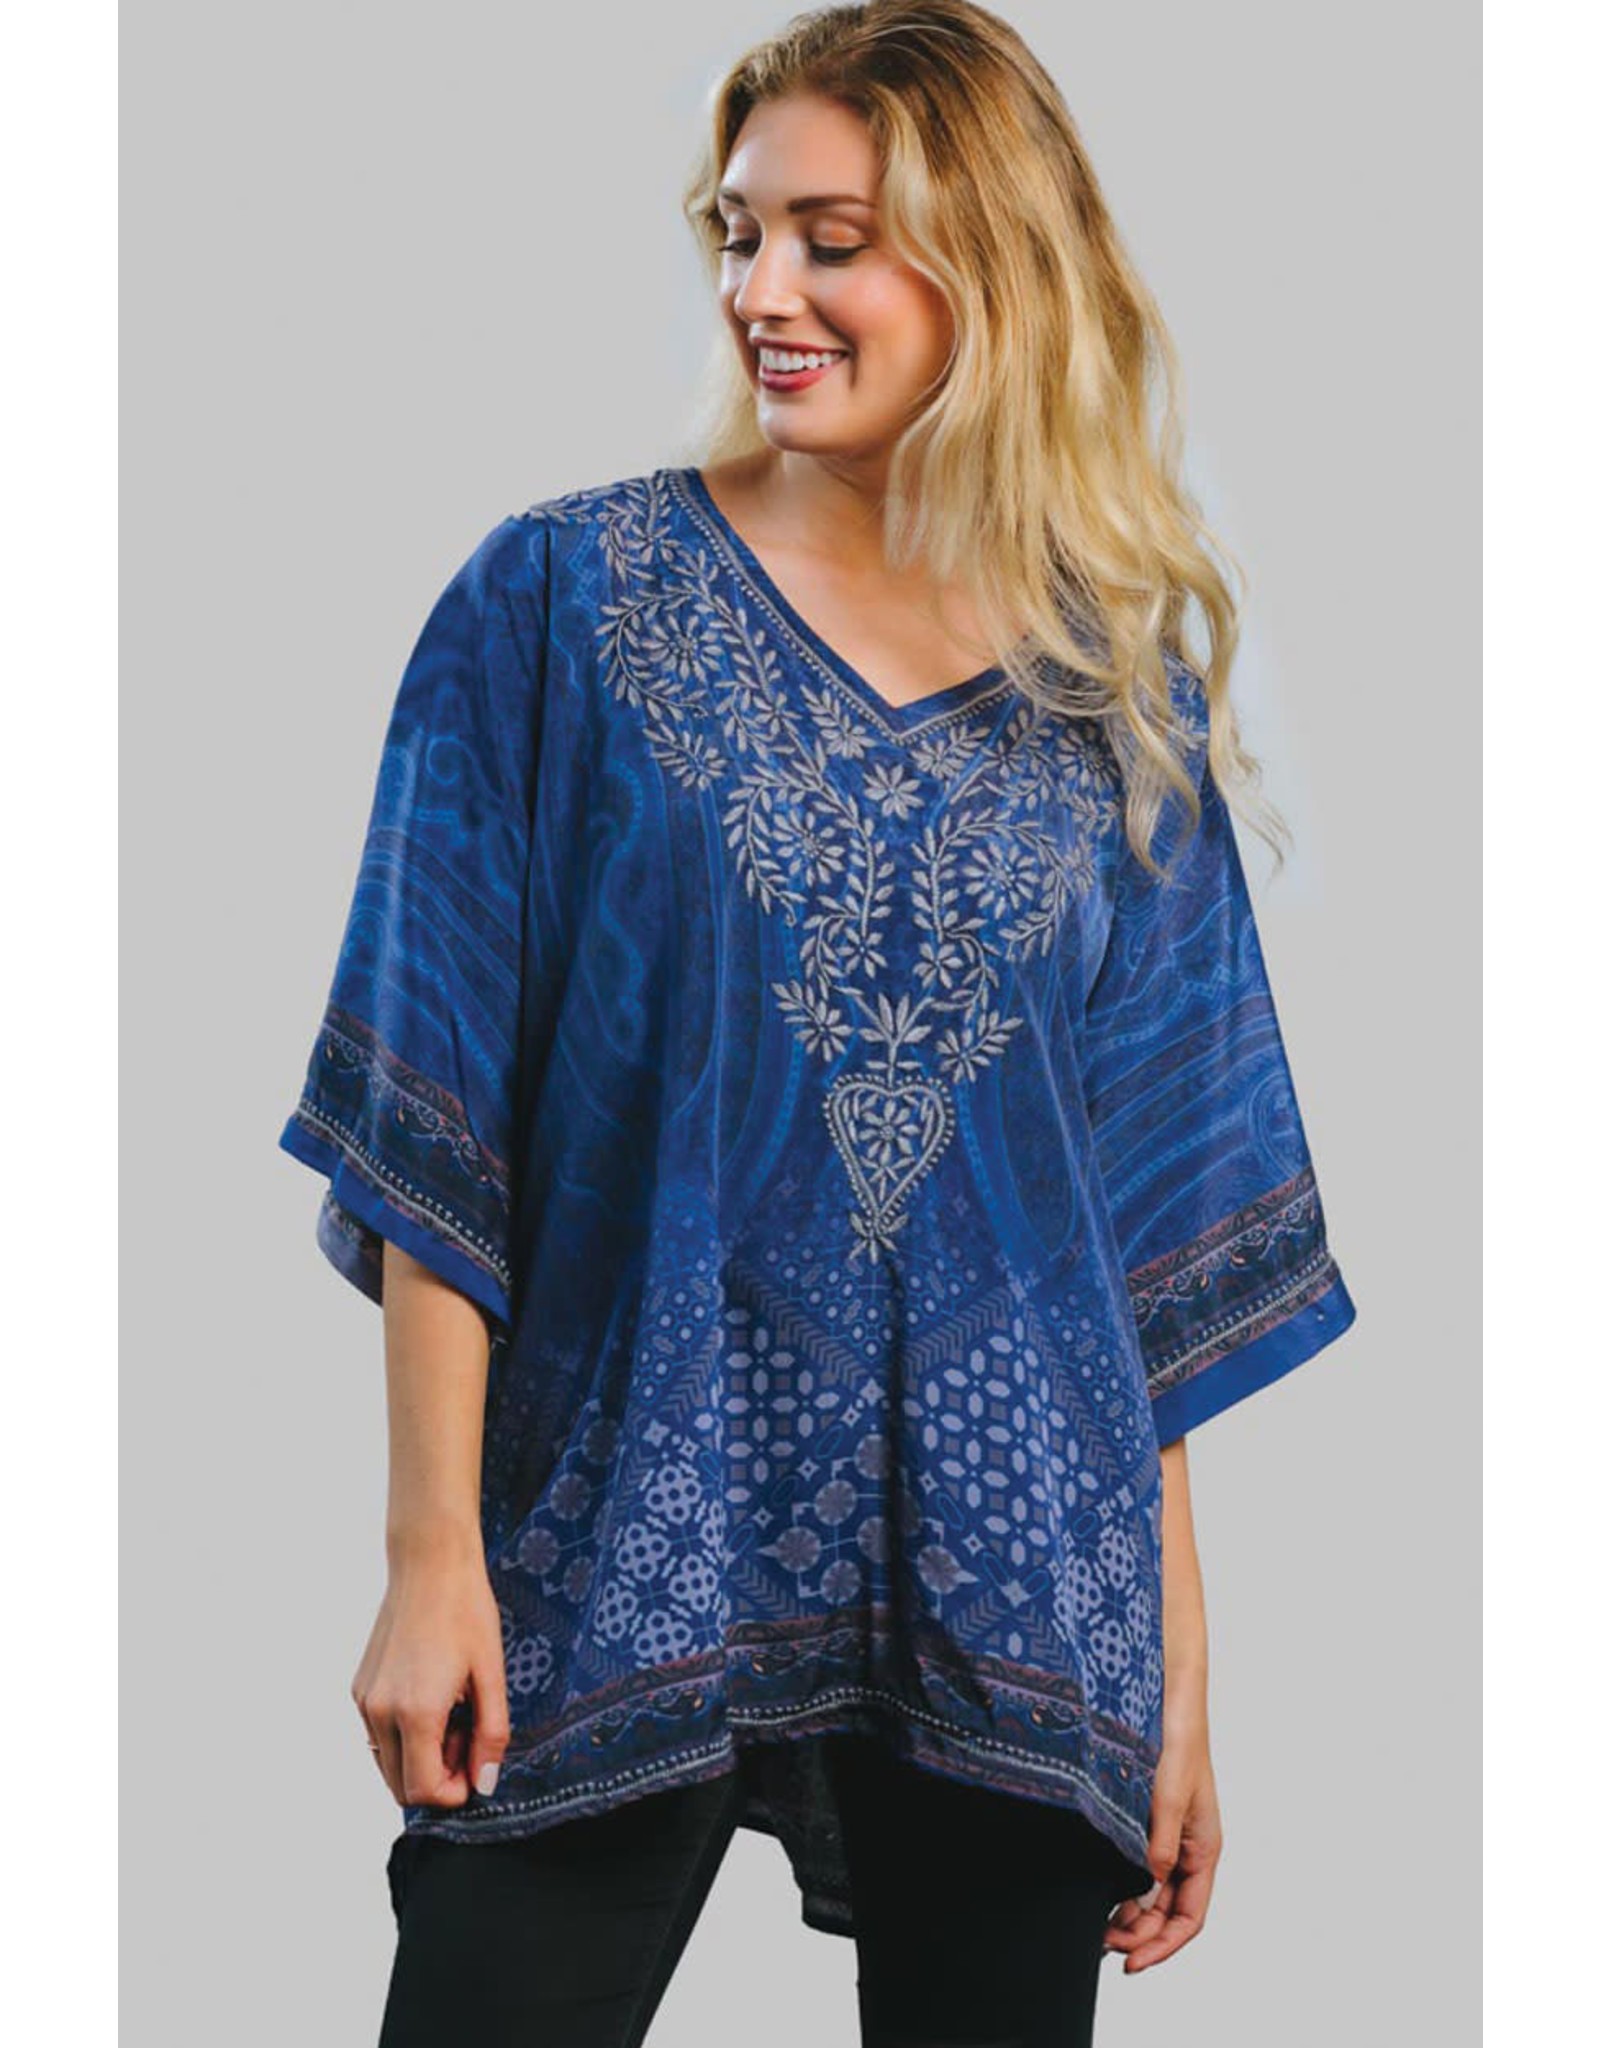 Darika Hand Embroidered Top, Blue and Silver, India